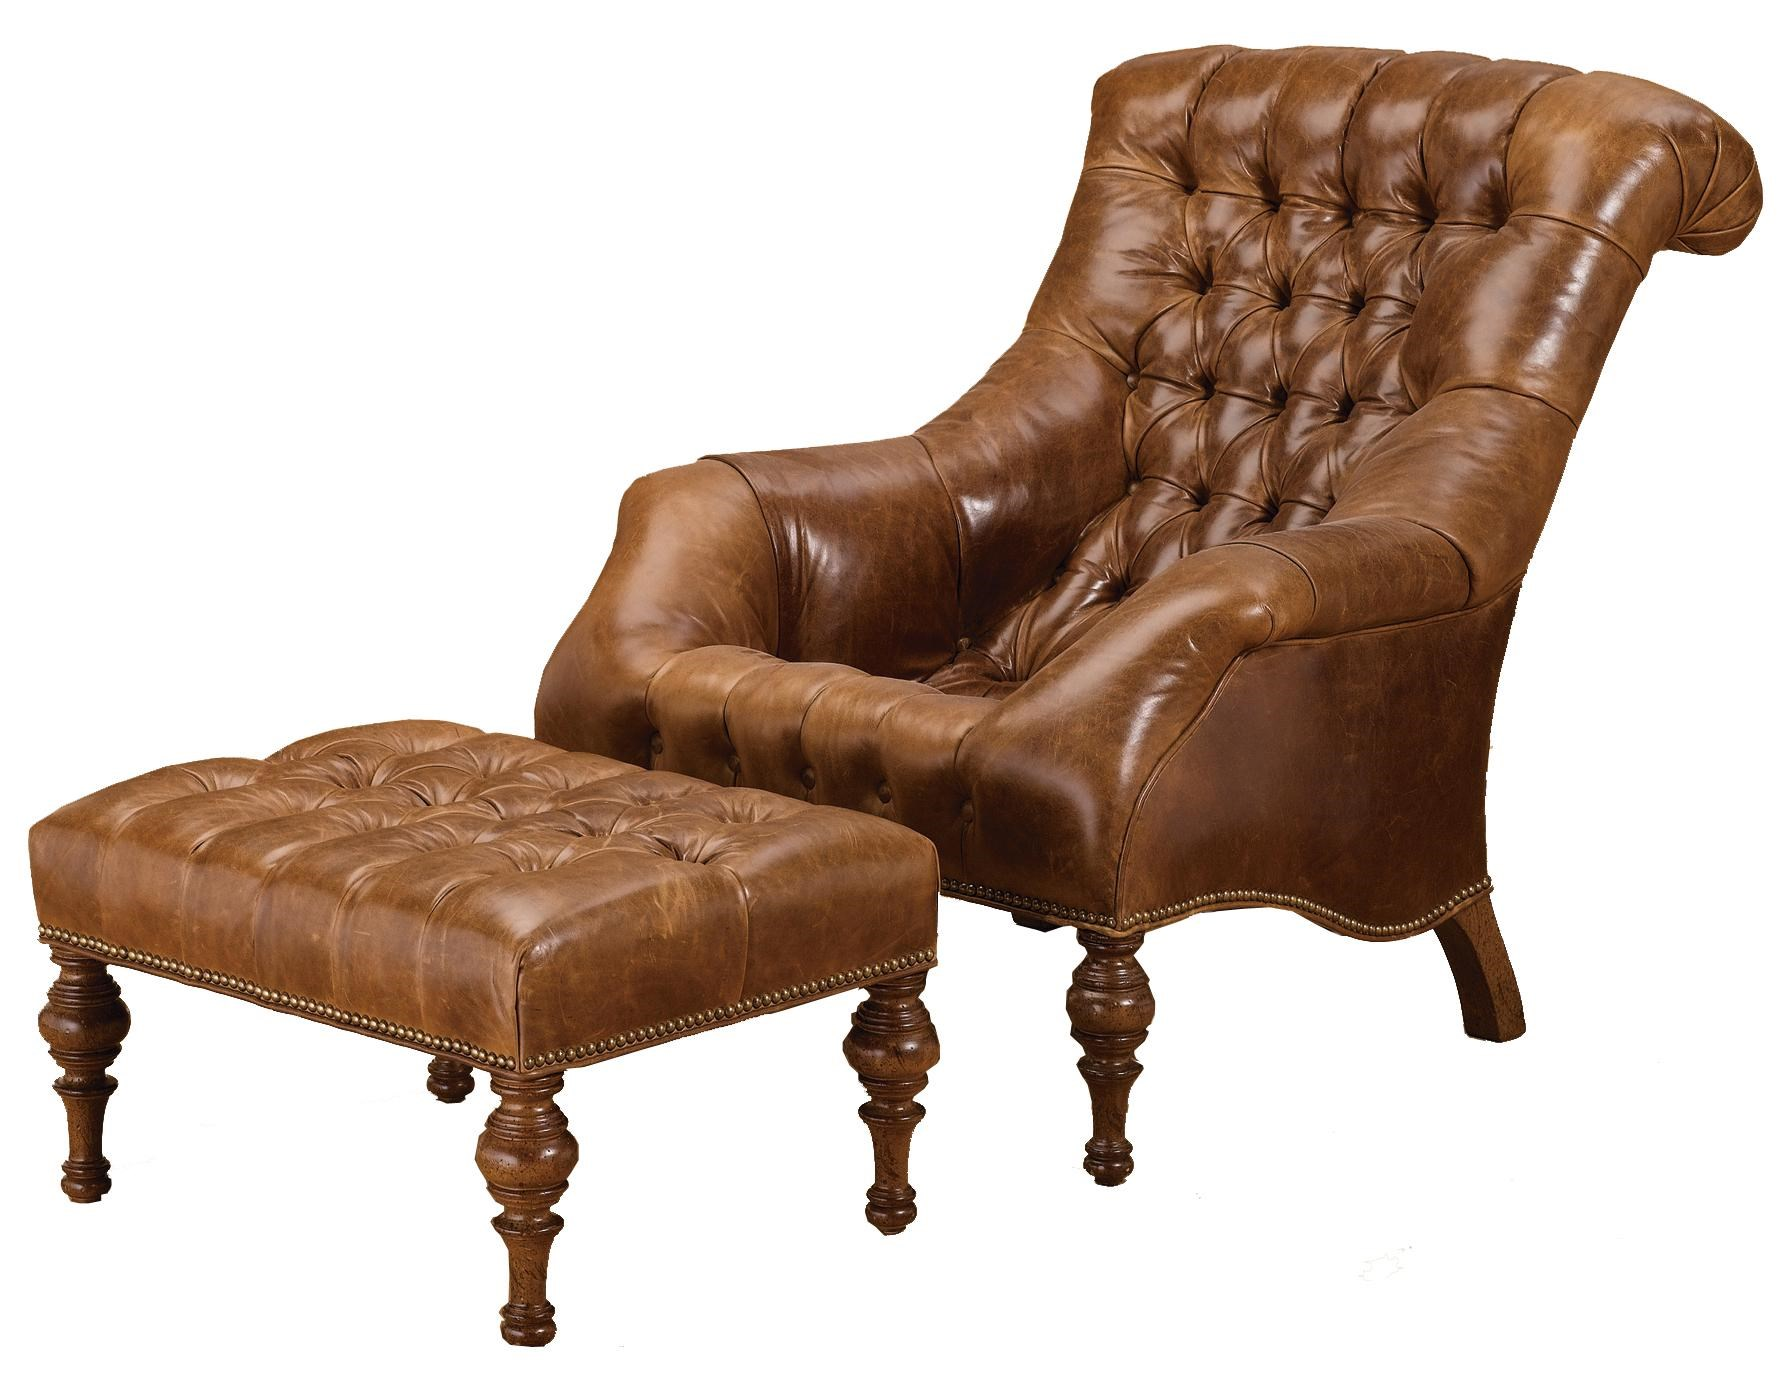 Wesley Hall Accent Chairs And Ottomans Traditional Upholstered Chair And  Ottoman With Turned Wood Feet